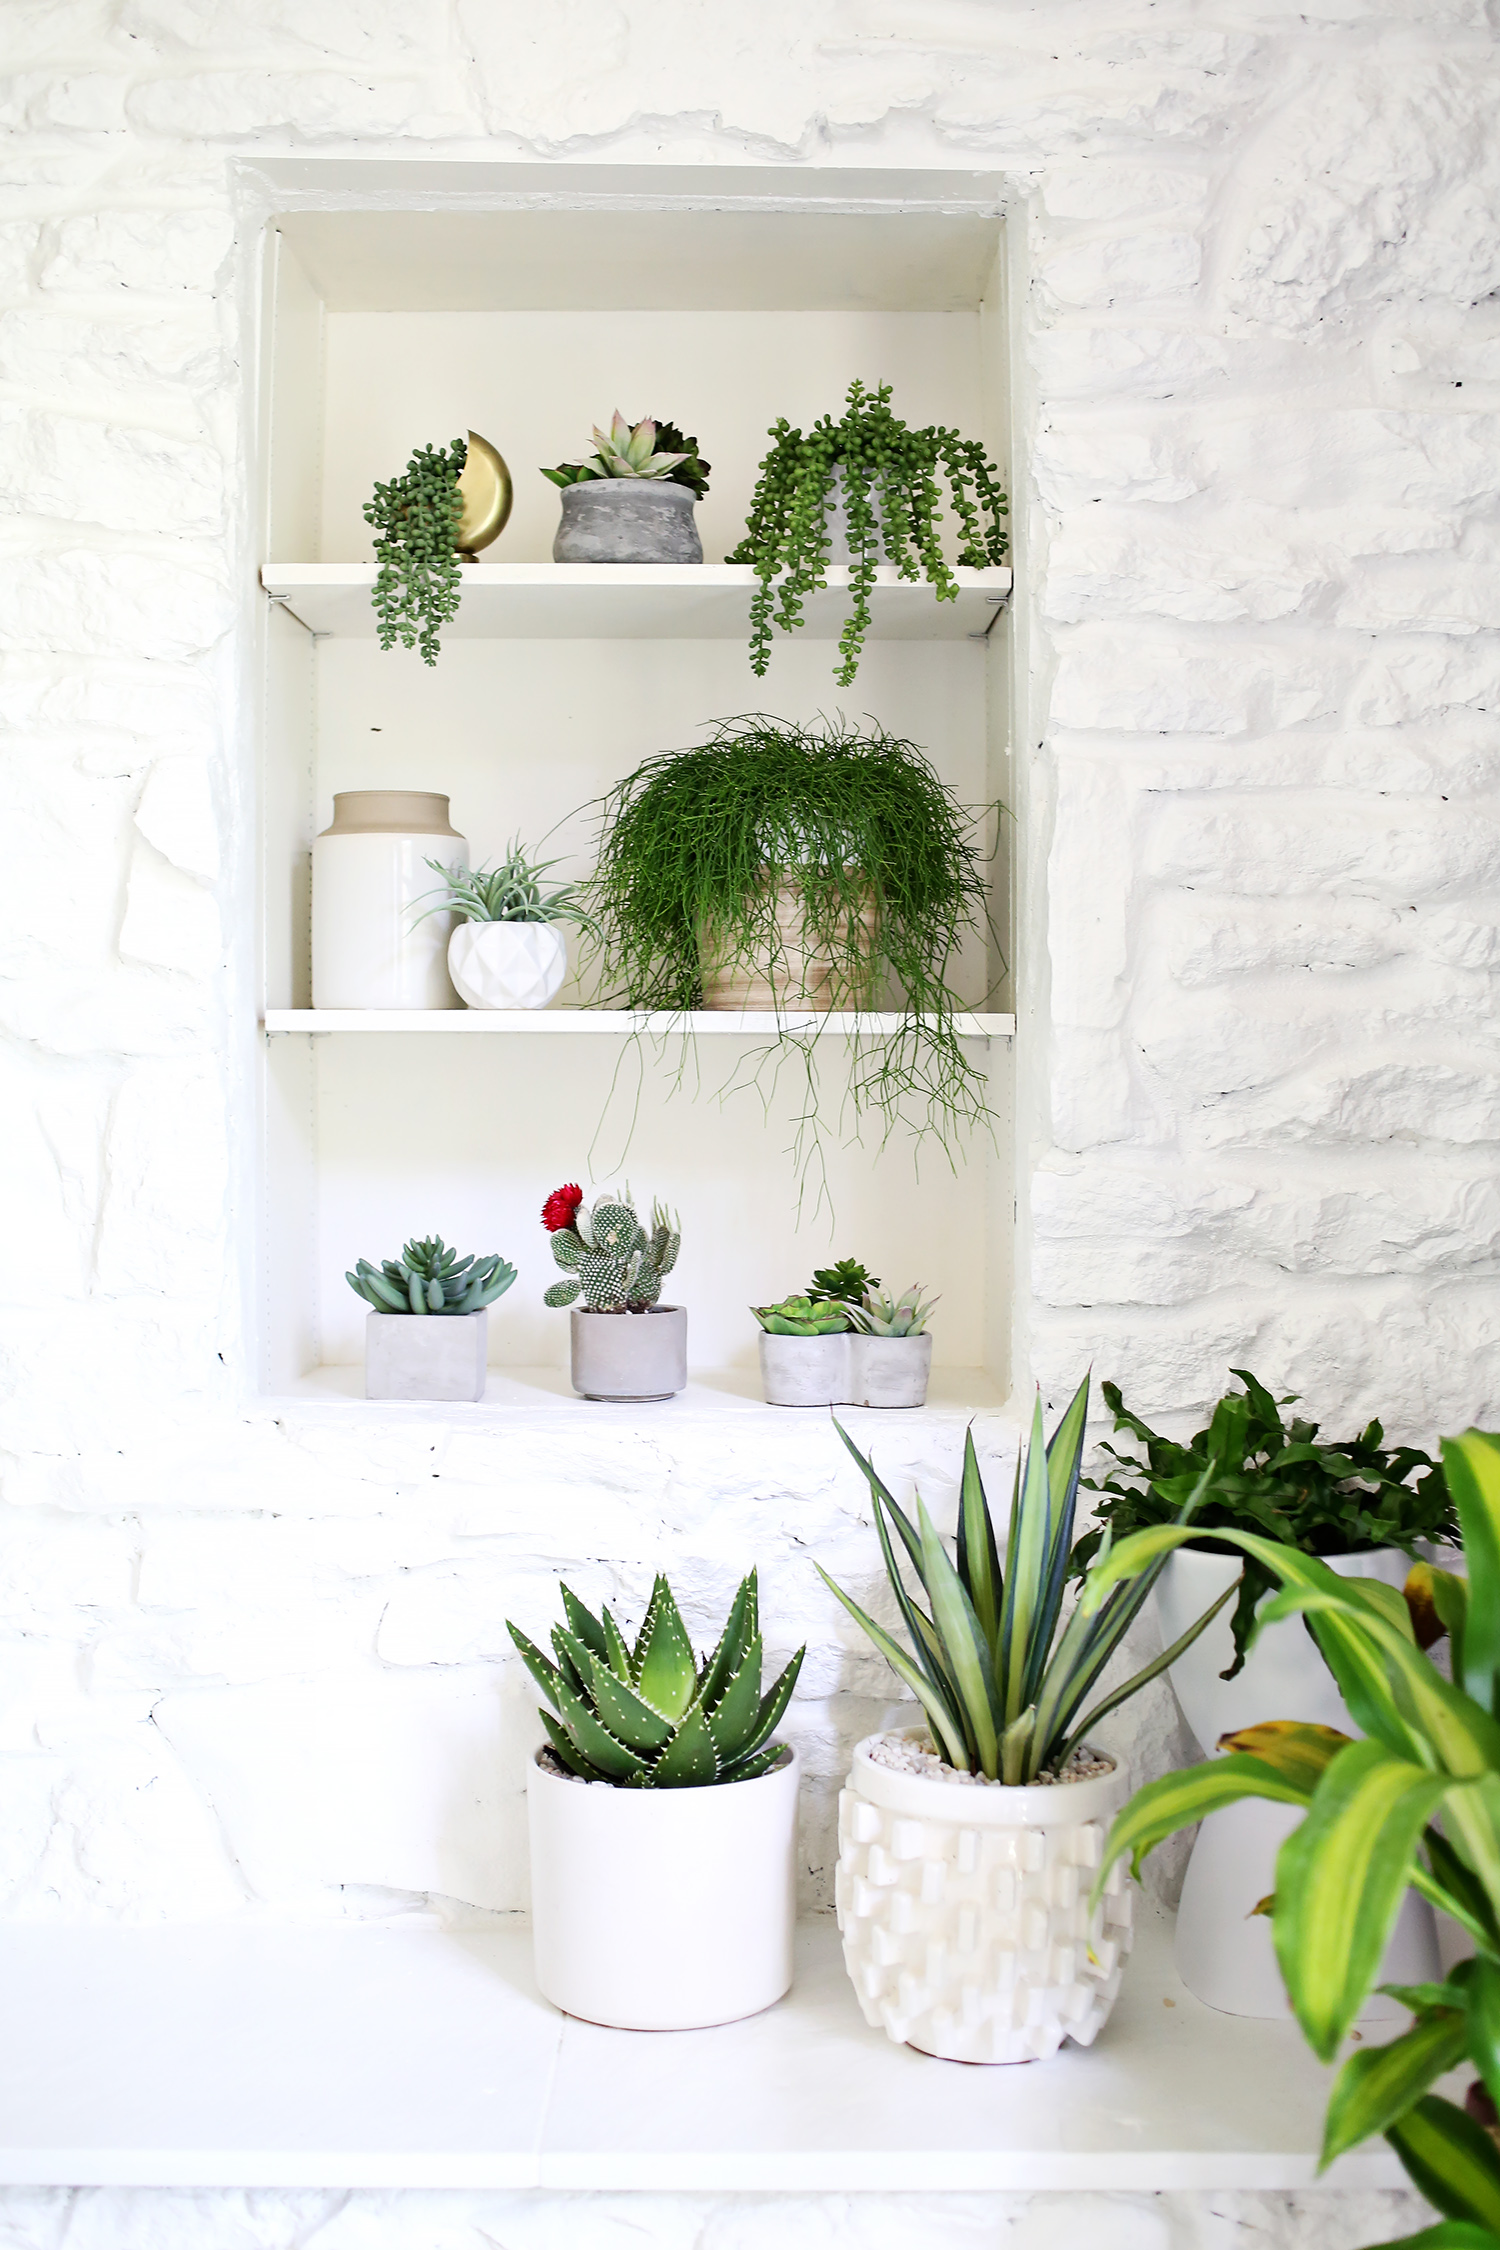 Are you faux real? (How to find convincing fake plants)